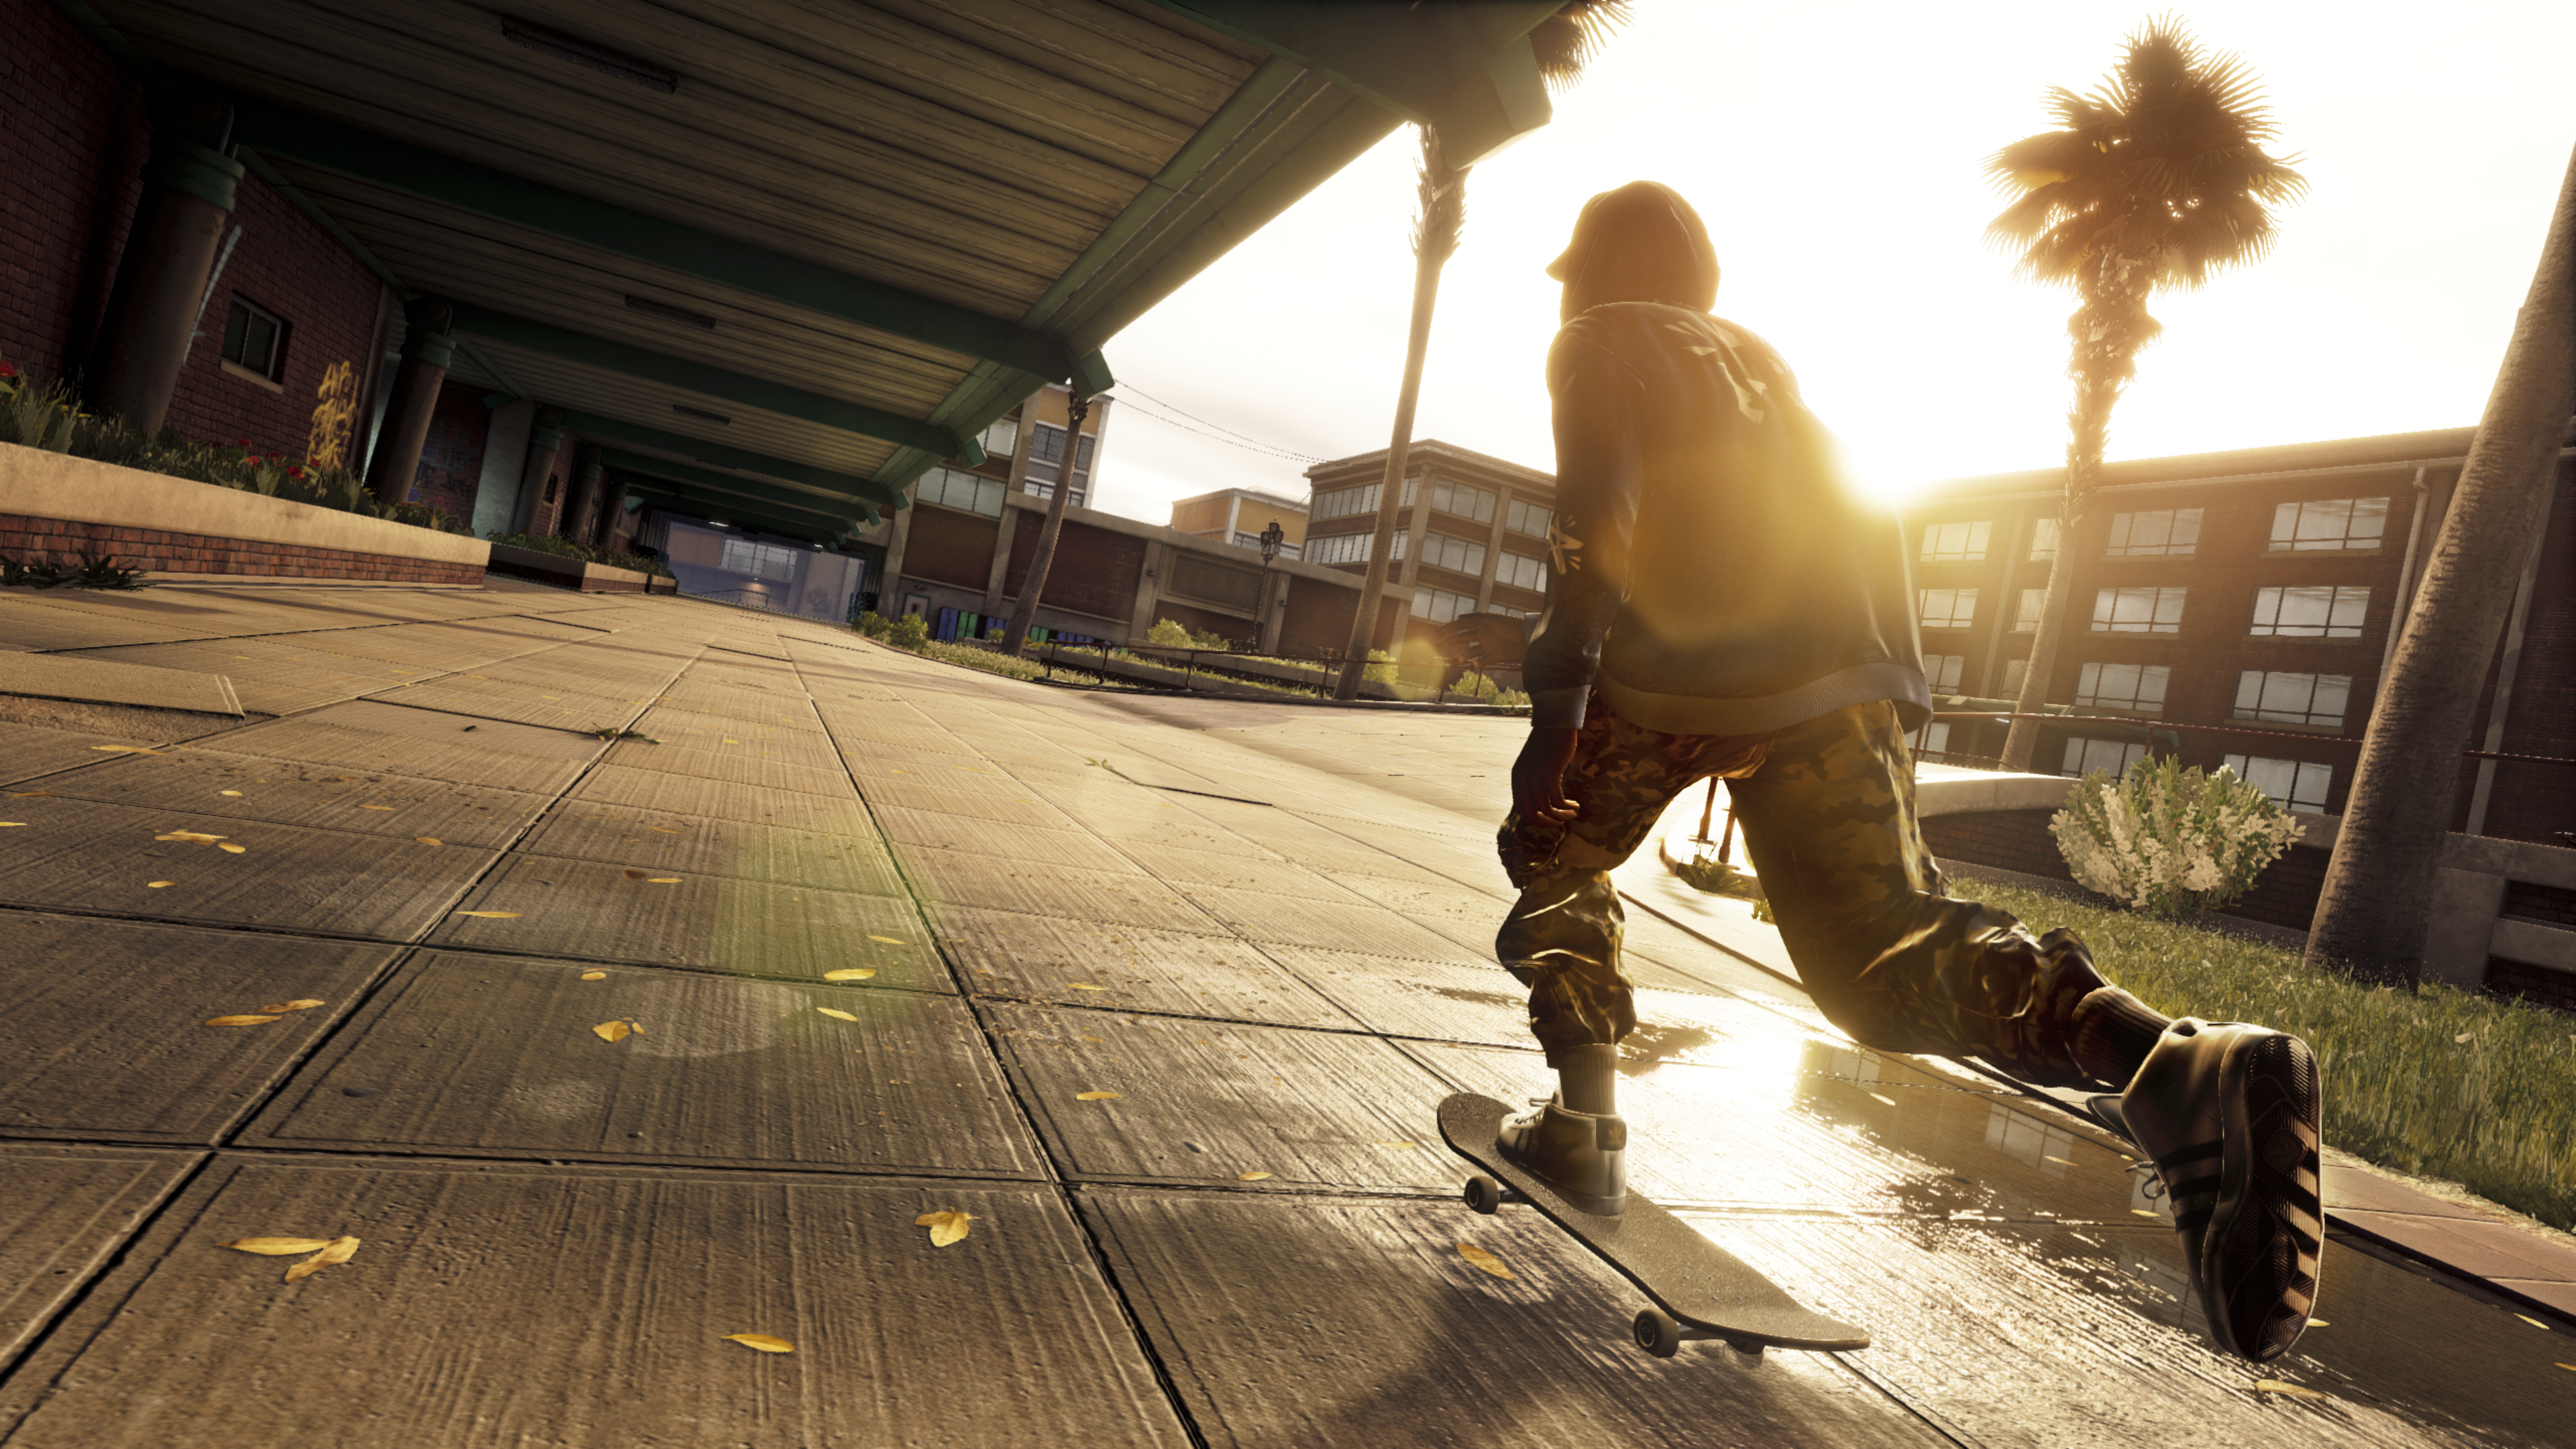 Tony Hawk's Pro Skater 1 + 2 - Gallery Screenshot 11